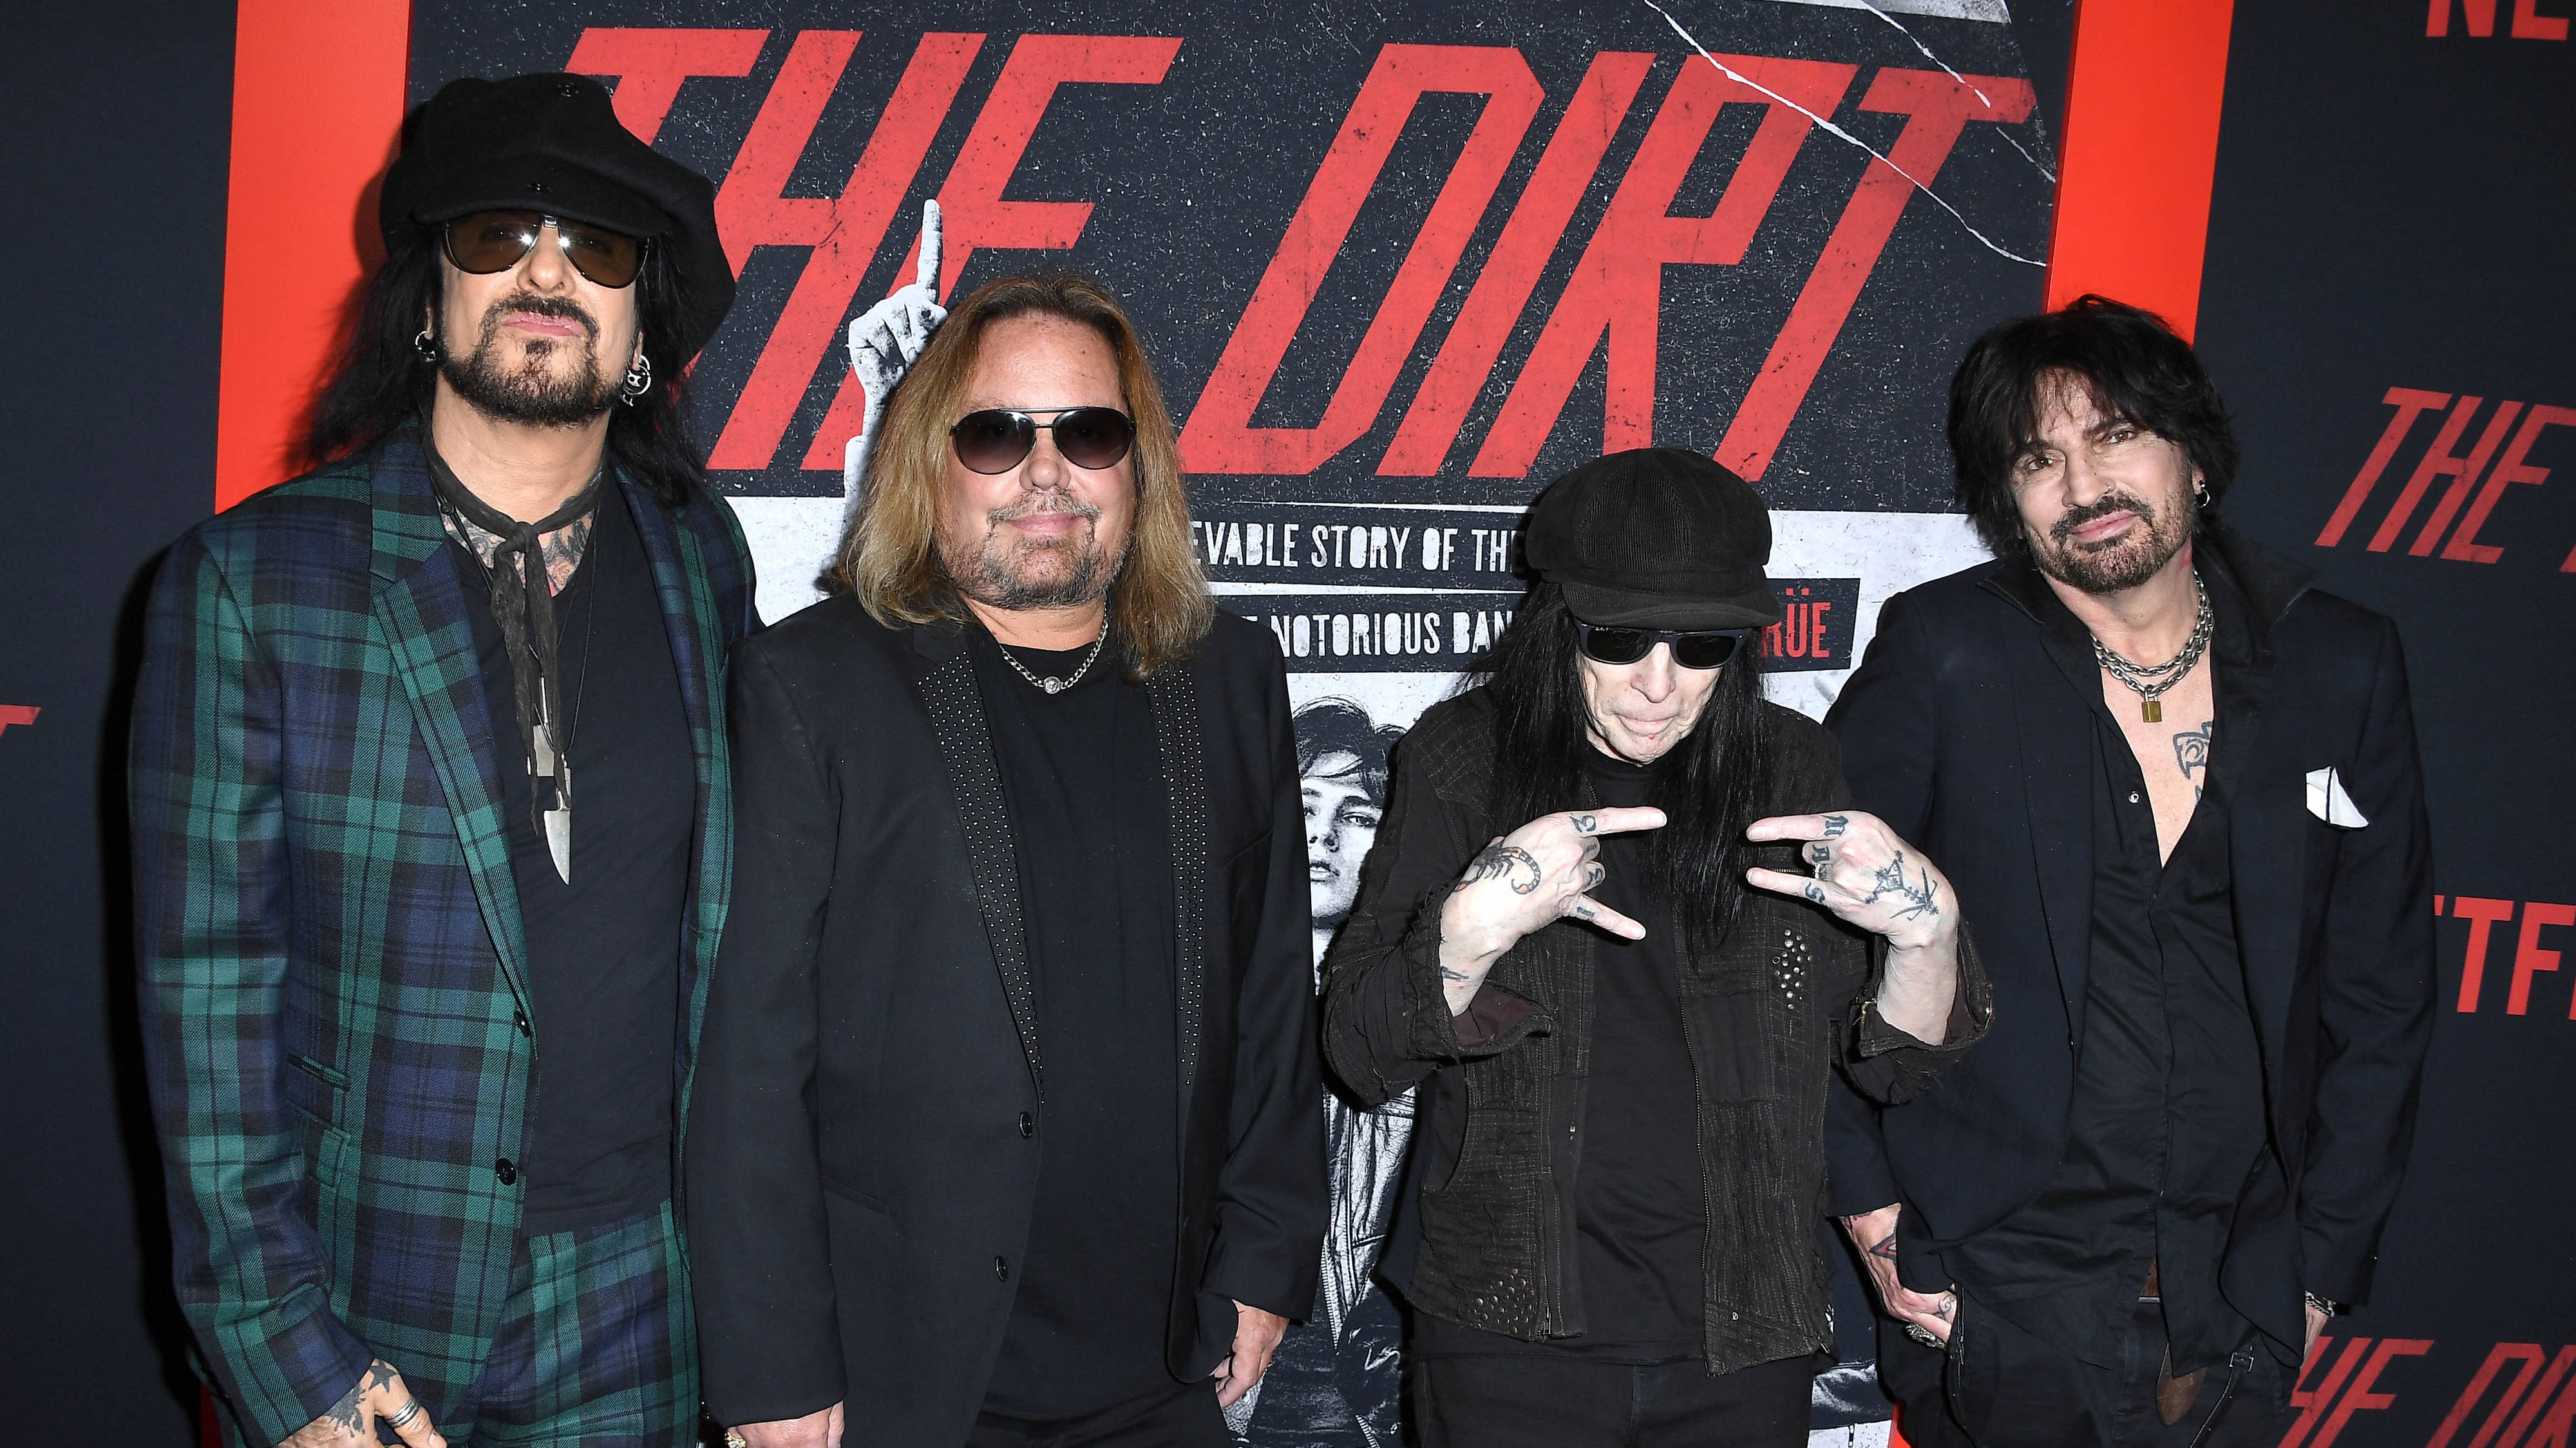 Mötley Crüe's The Dirt has been released as an audiobook